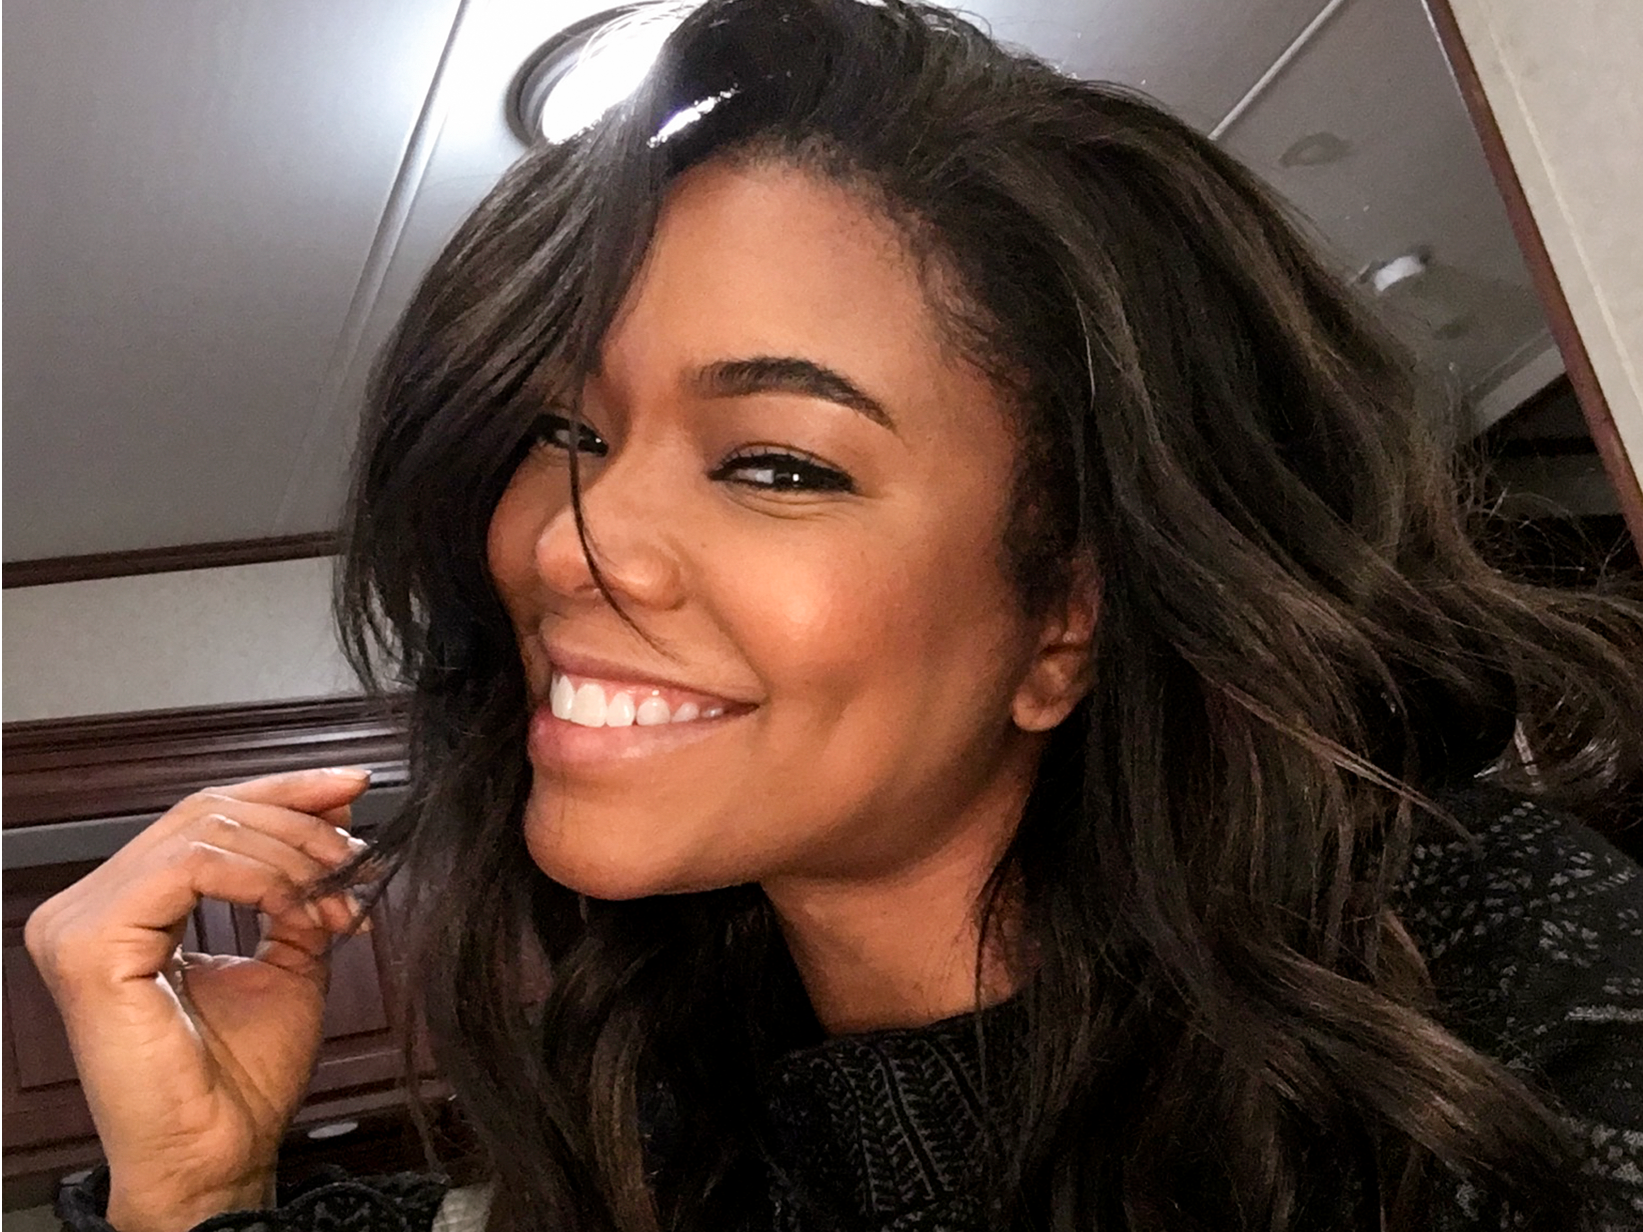 gabrielle-union-tells-fans-she-is-a-truck-person-check-out-her-clip-here